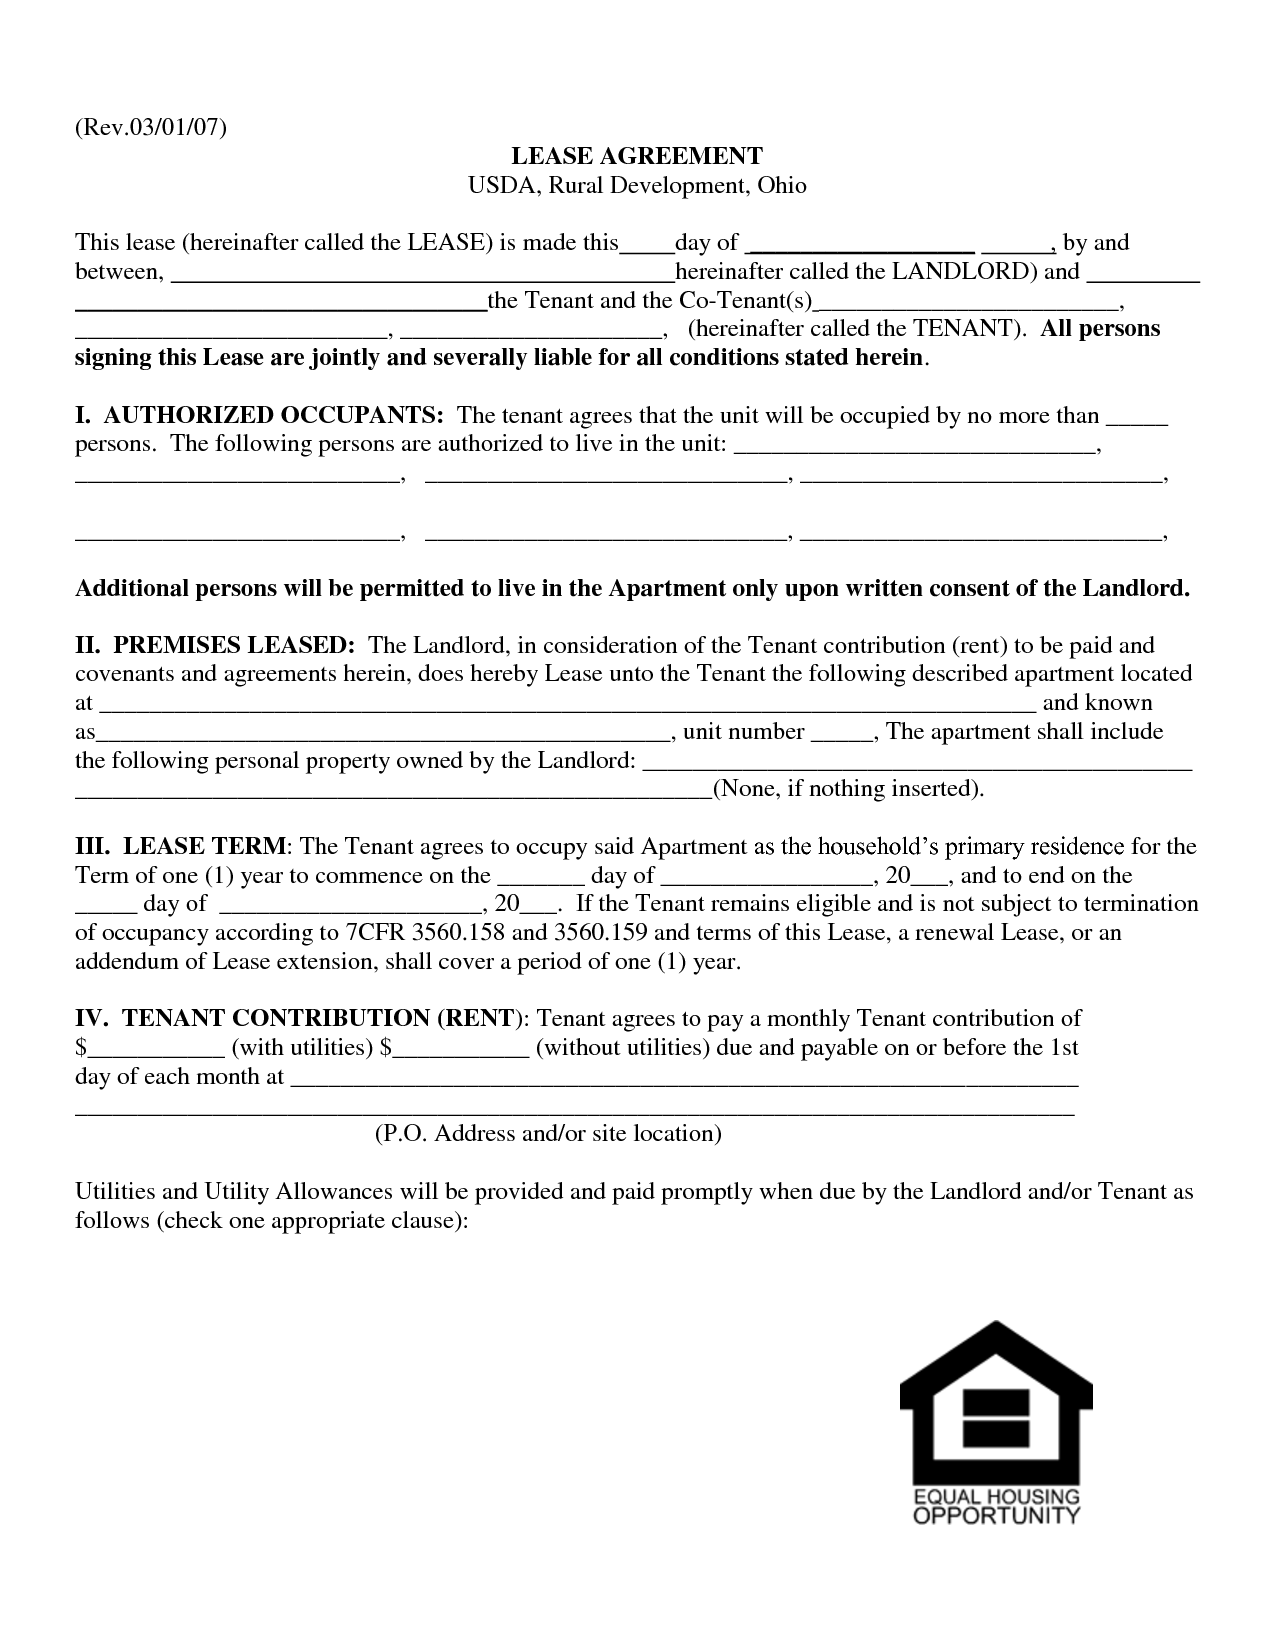 Ohio Rental Agreement Samples | Business Document